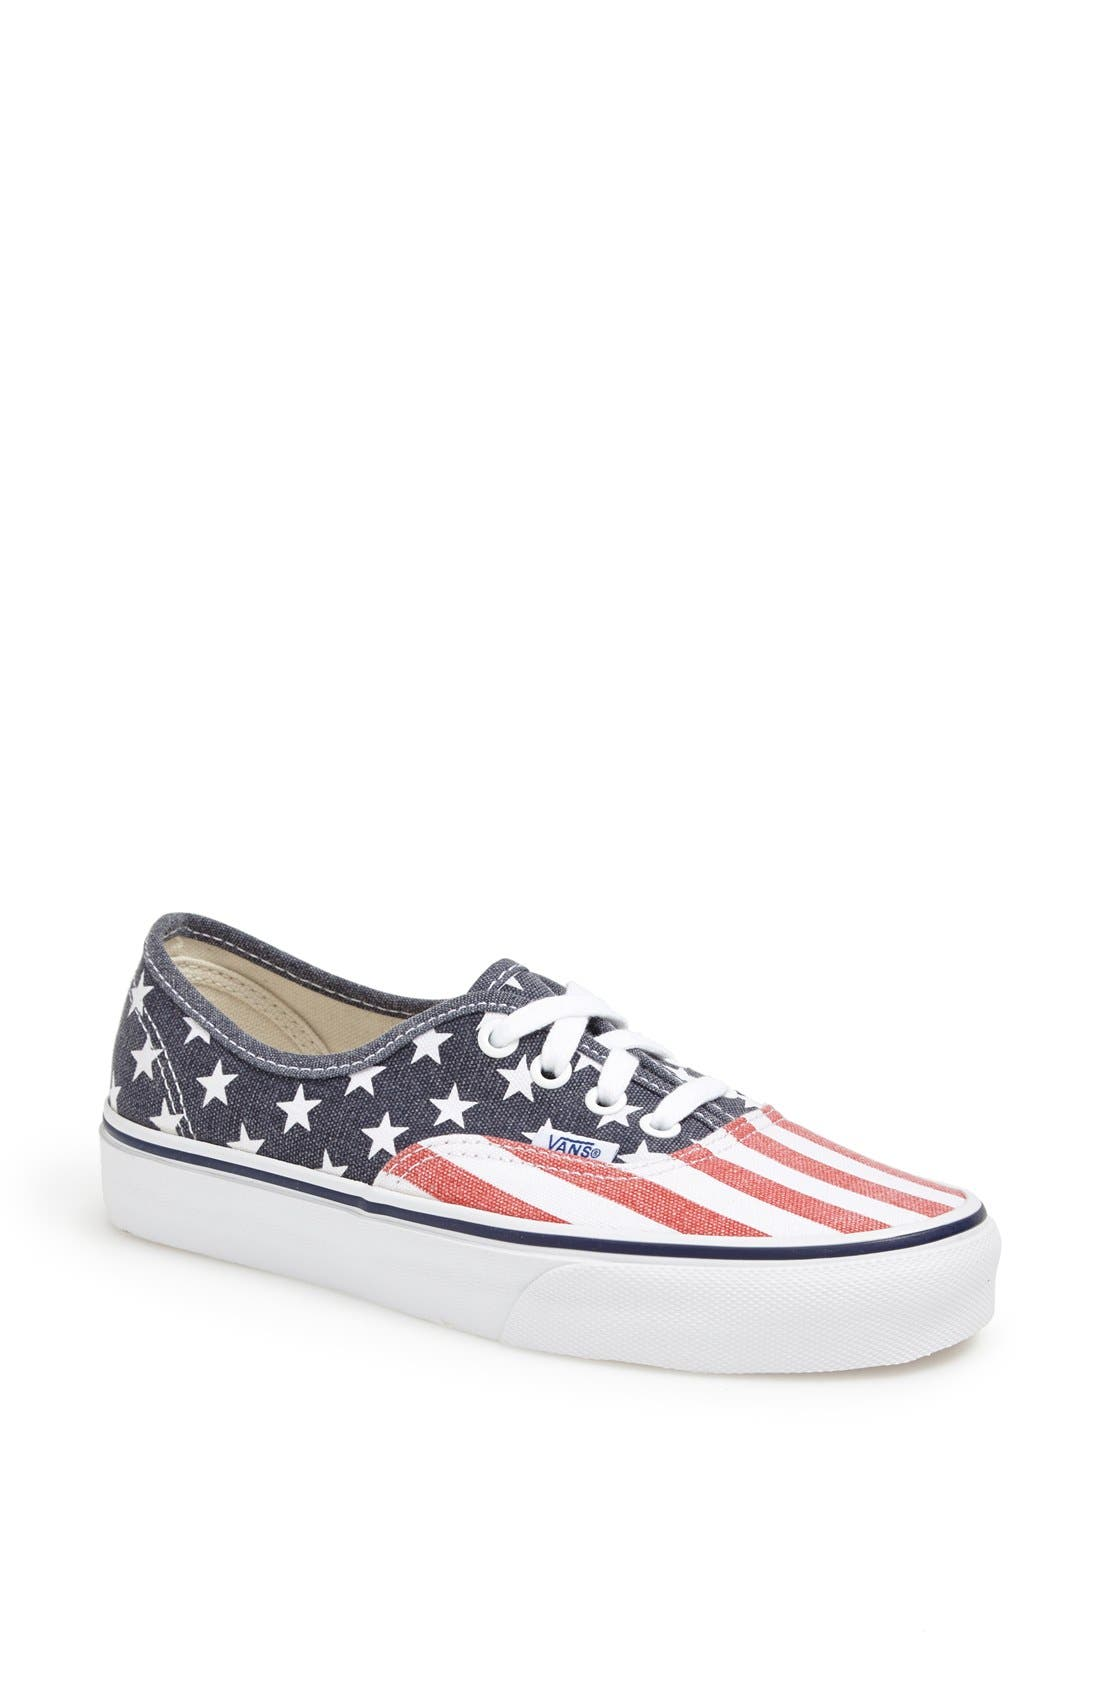 Main Image - Vans 'Van Doren - Authentic' Sneaker (Women)